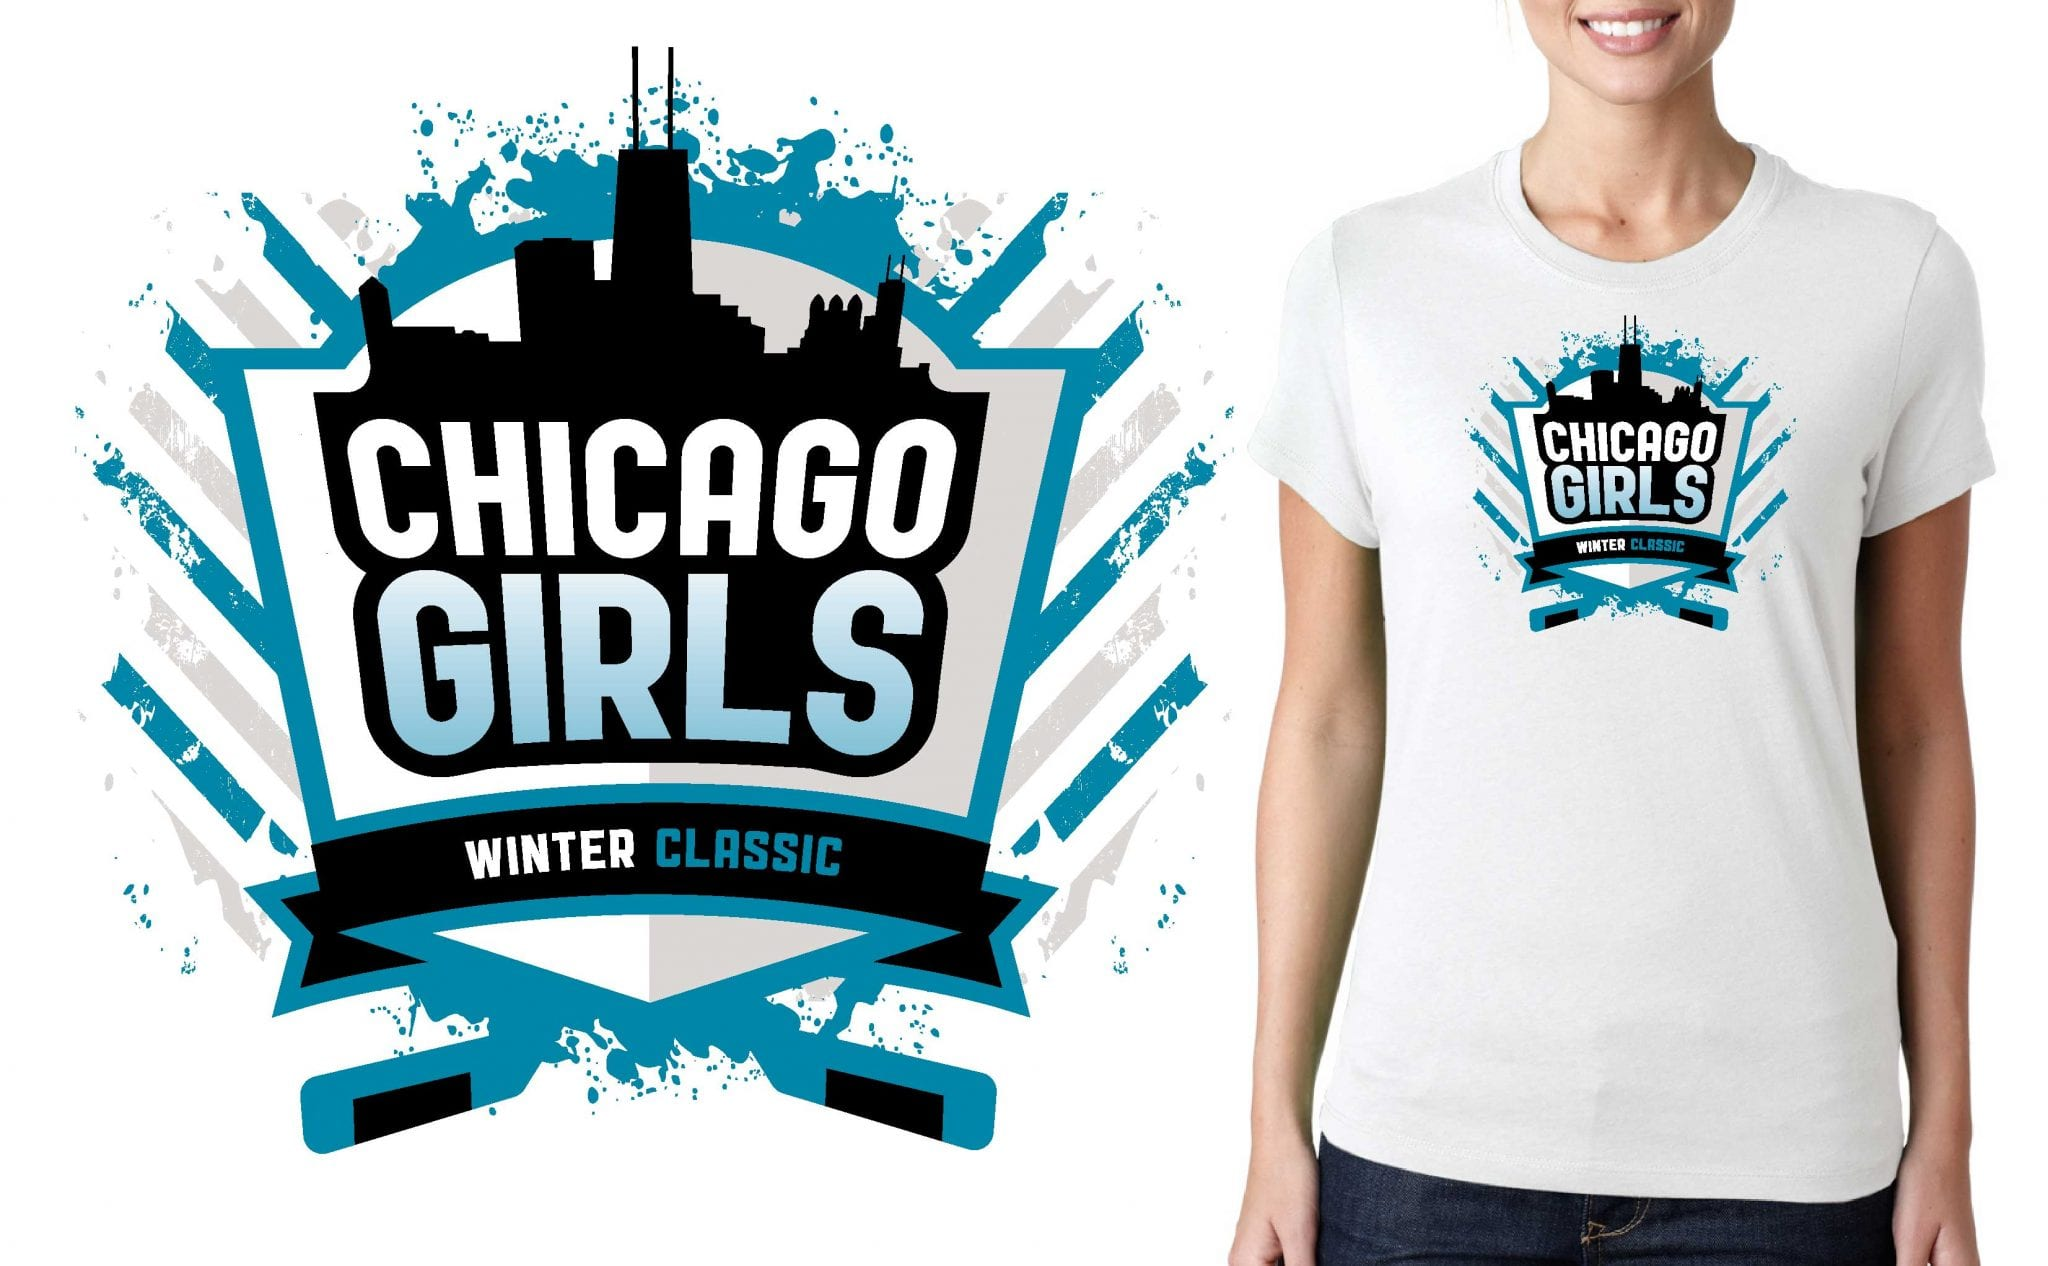 PRINT 1 14 15 17 Canlan Chicago Girls Winter Classic vector logo design for t-shirt ice hockey urartstudio.com